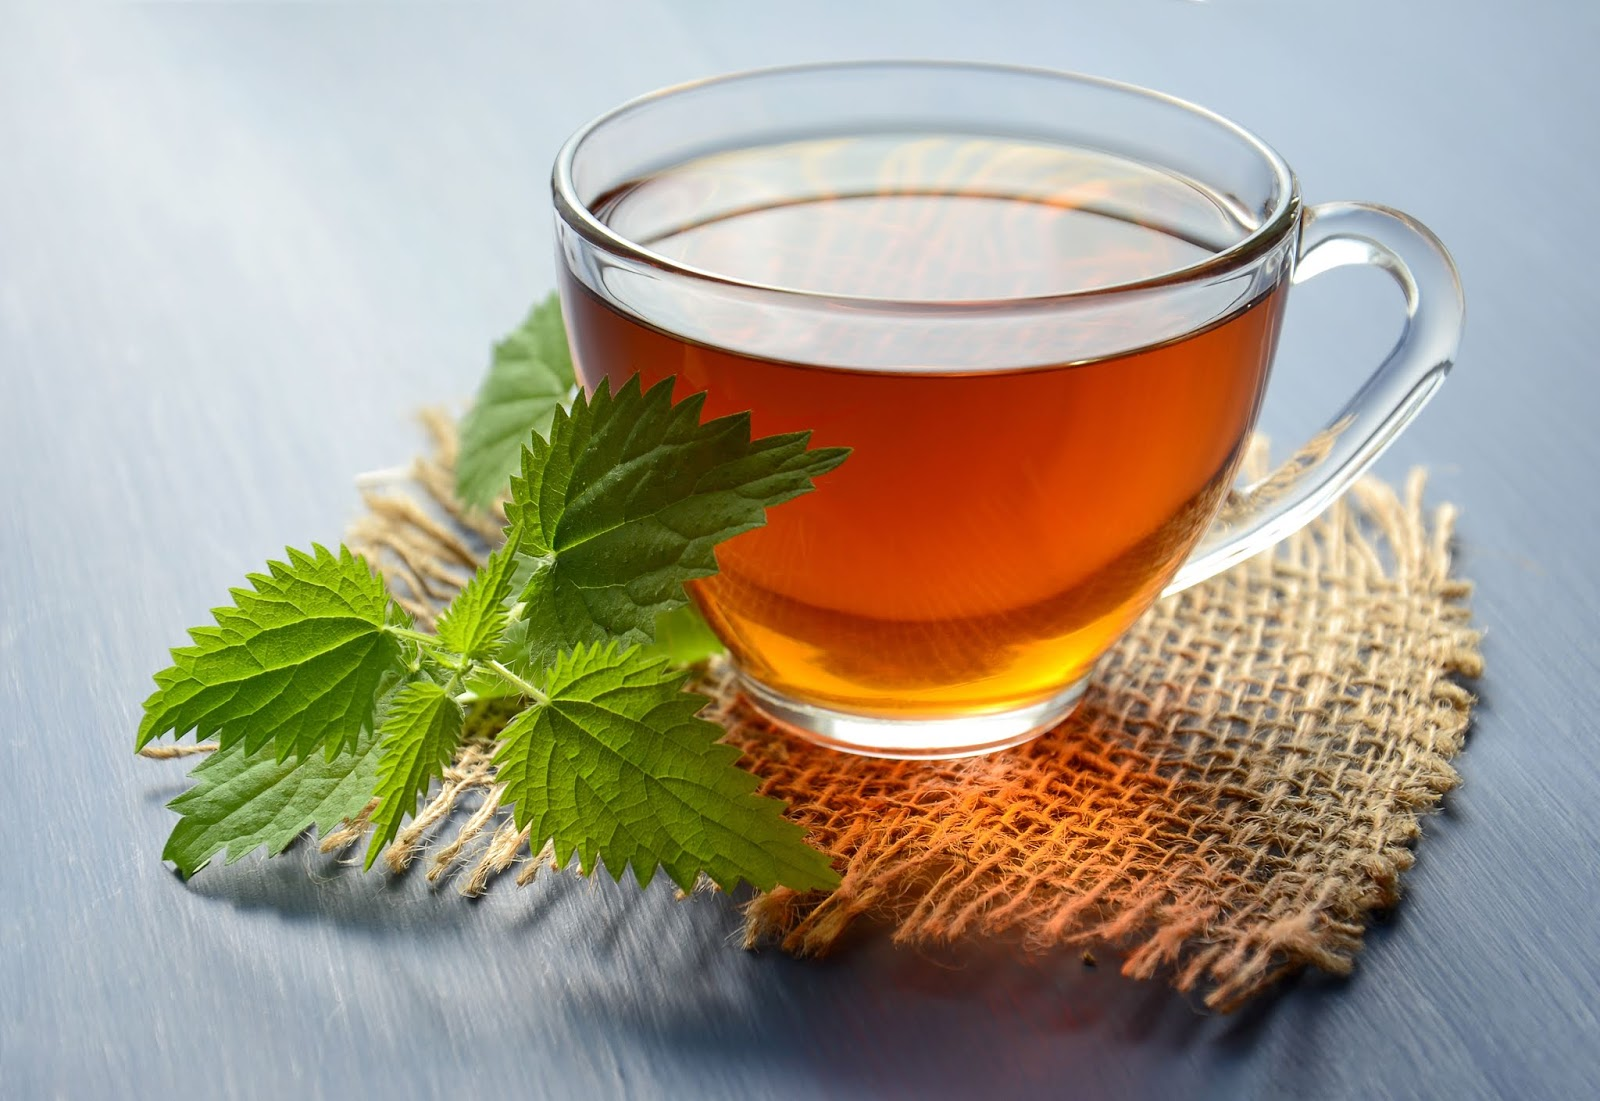 10 Foods That Help You to Concentrate Better and Their Benefits - Green Tea